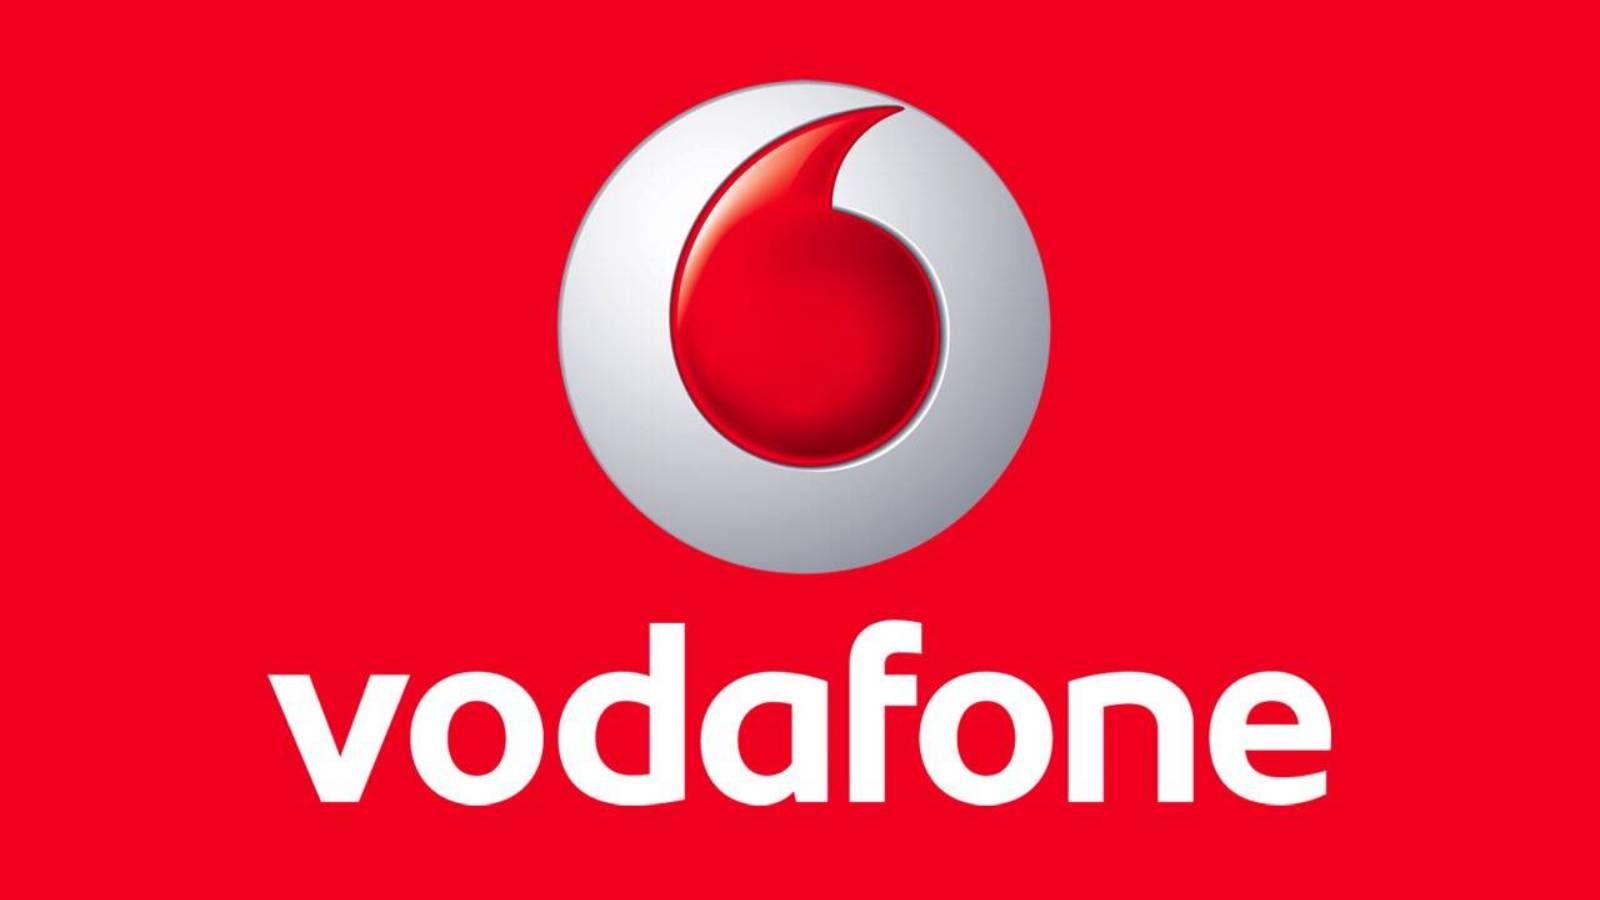 Vodafone domestic